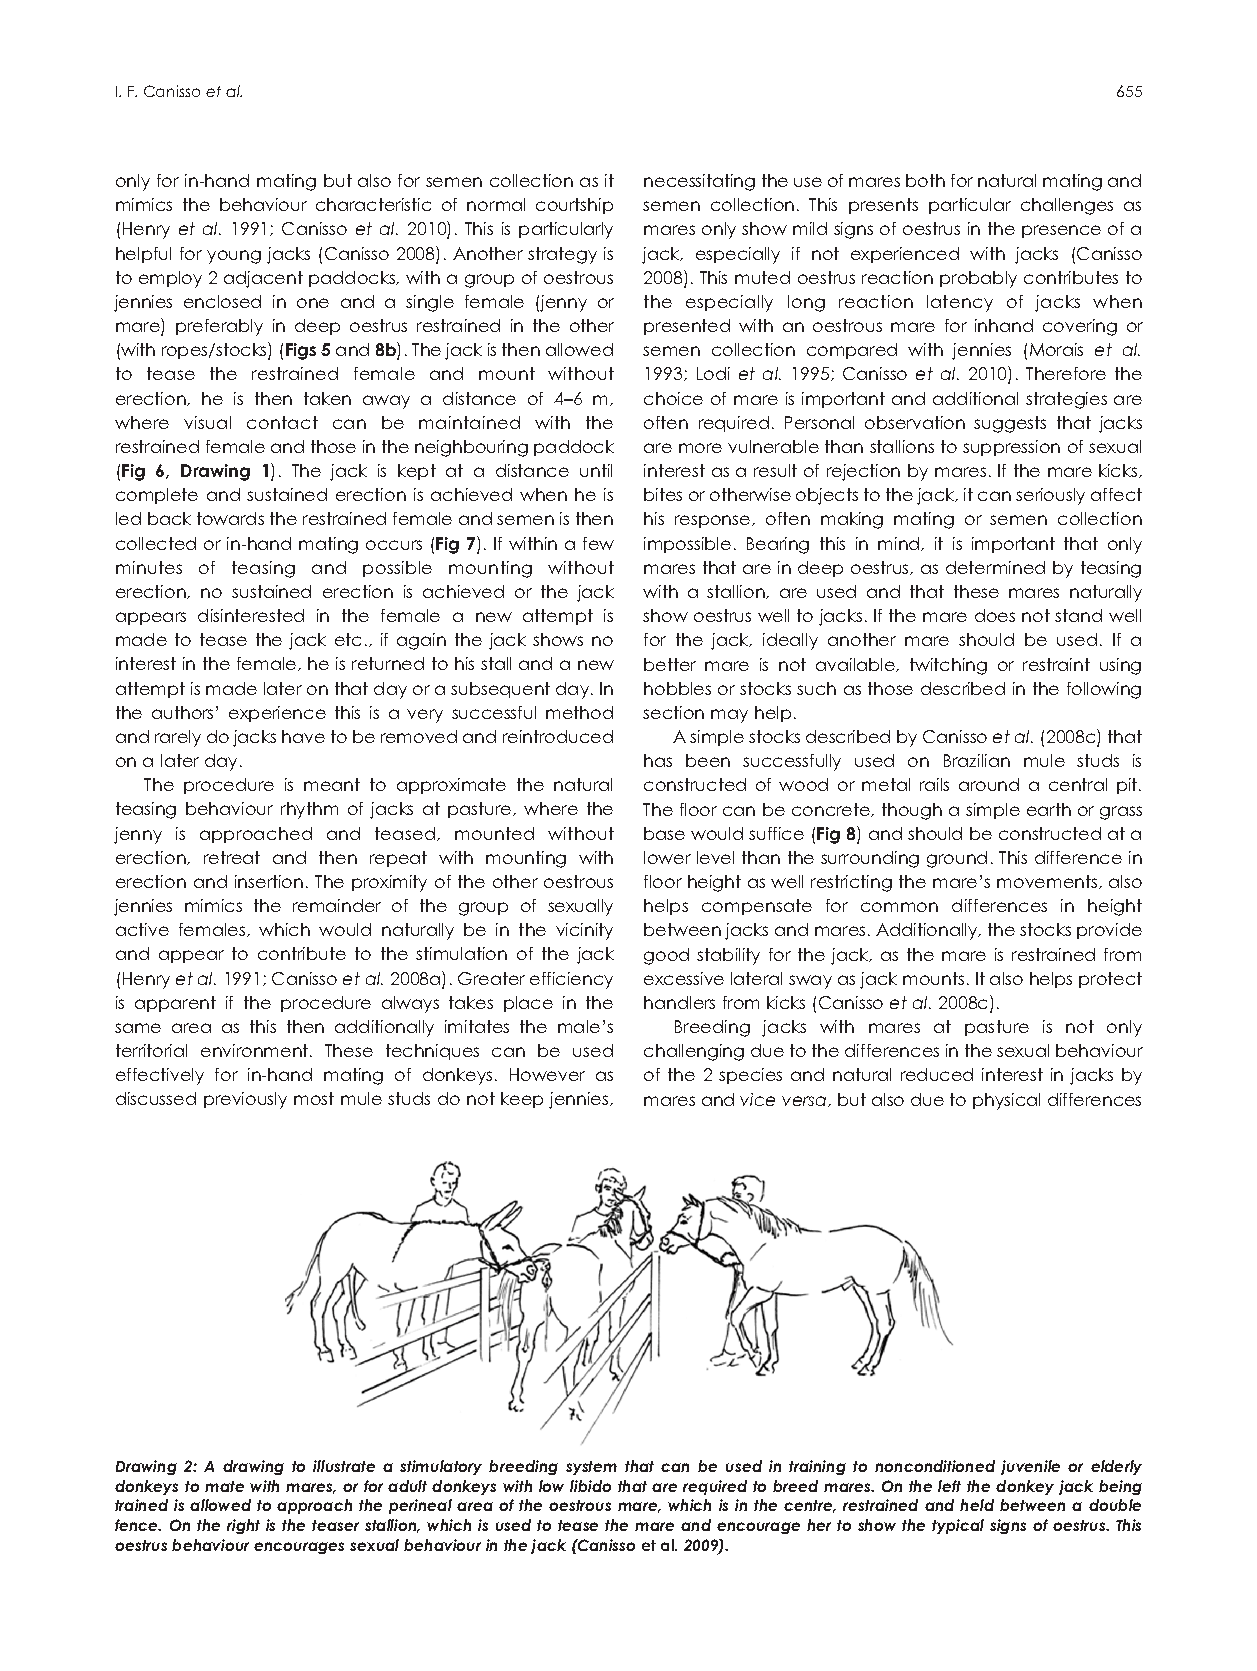 095777309X479058_Page_4.png